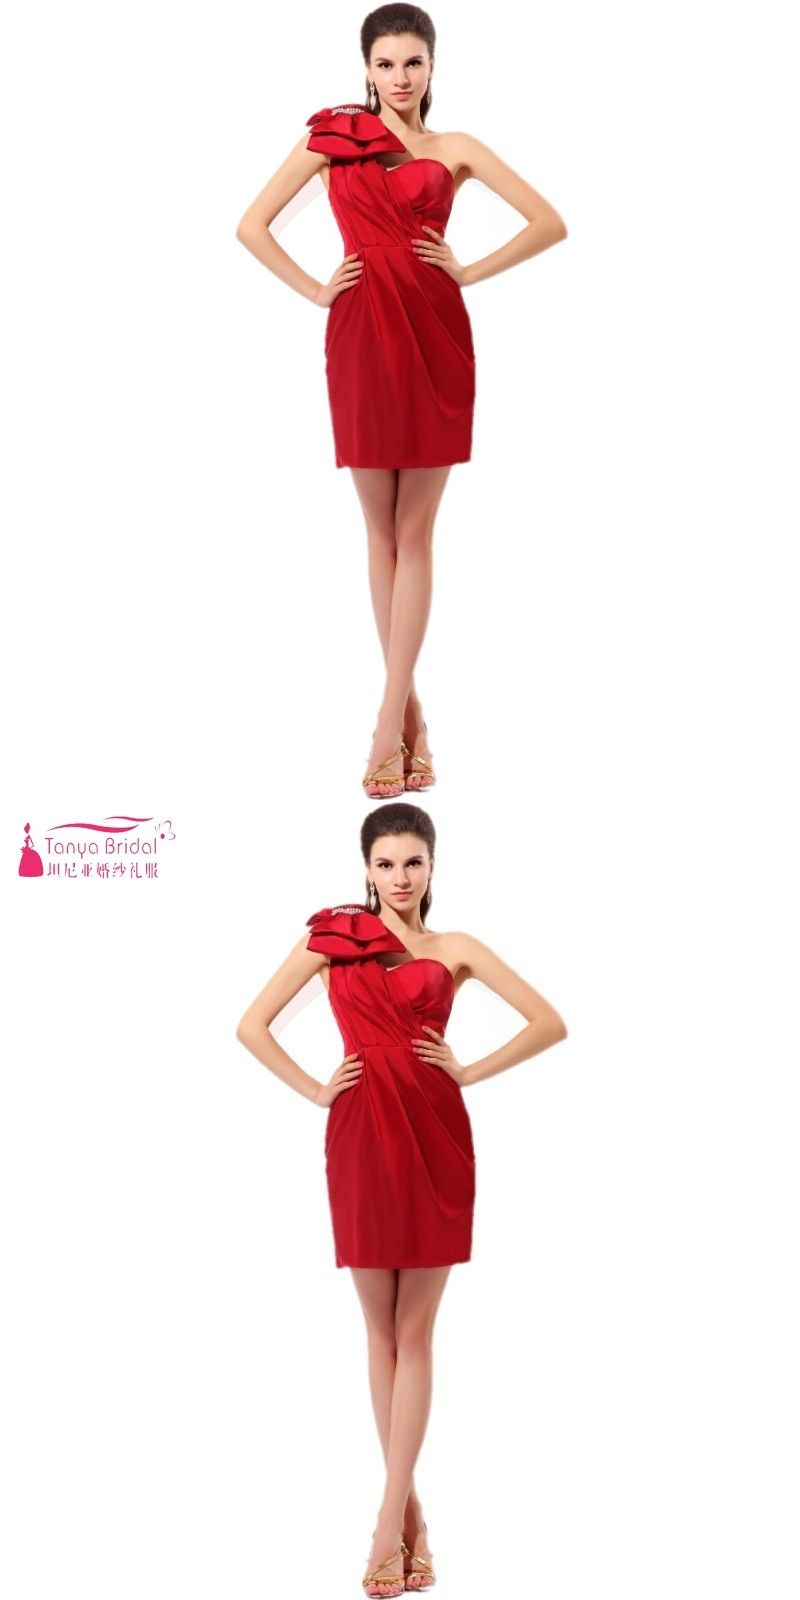 c17ddd0e3 One Shoulder Dark Red Short Mini Sexy Simple Cocktail Dresses With Bow  China Cheap Party Dress